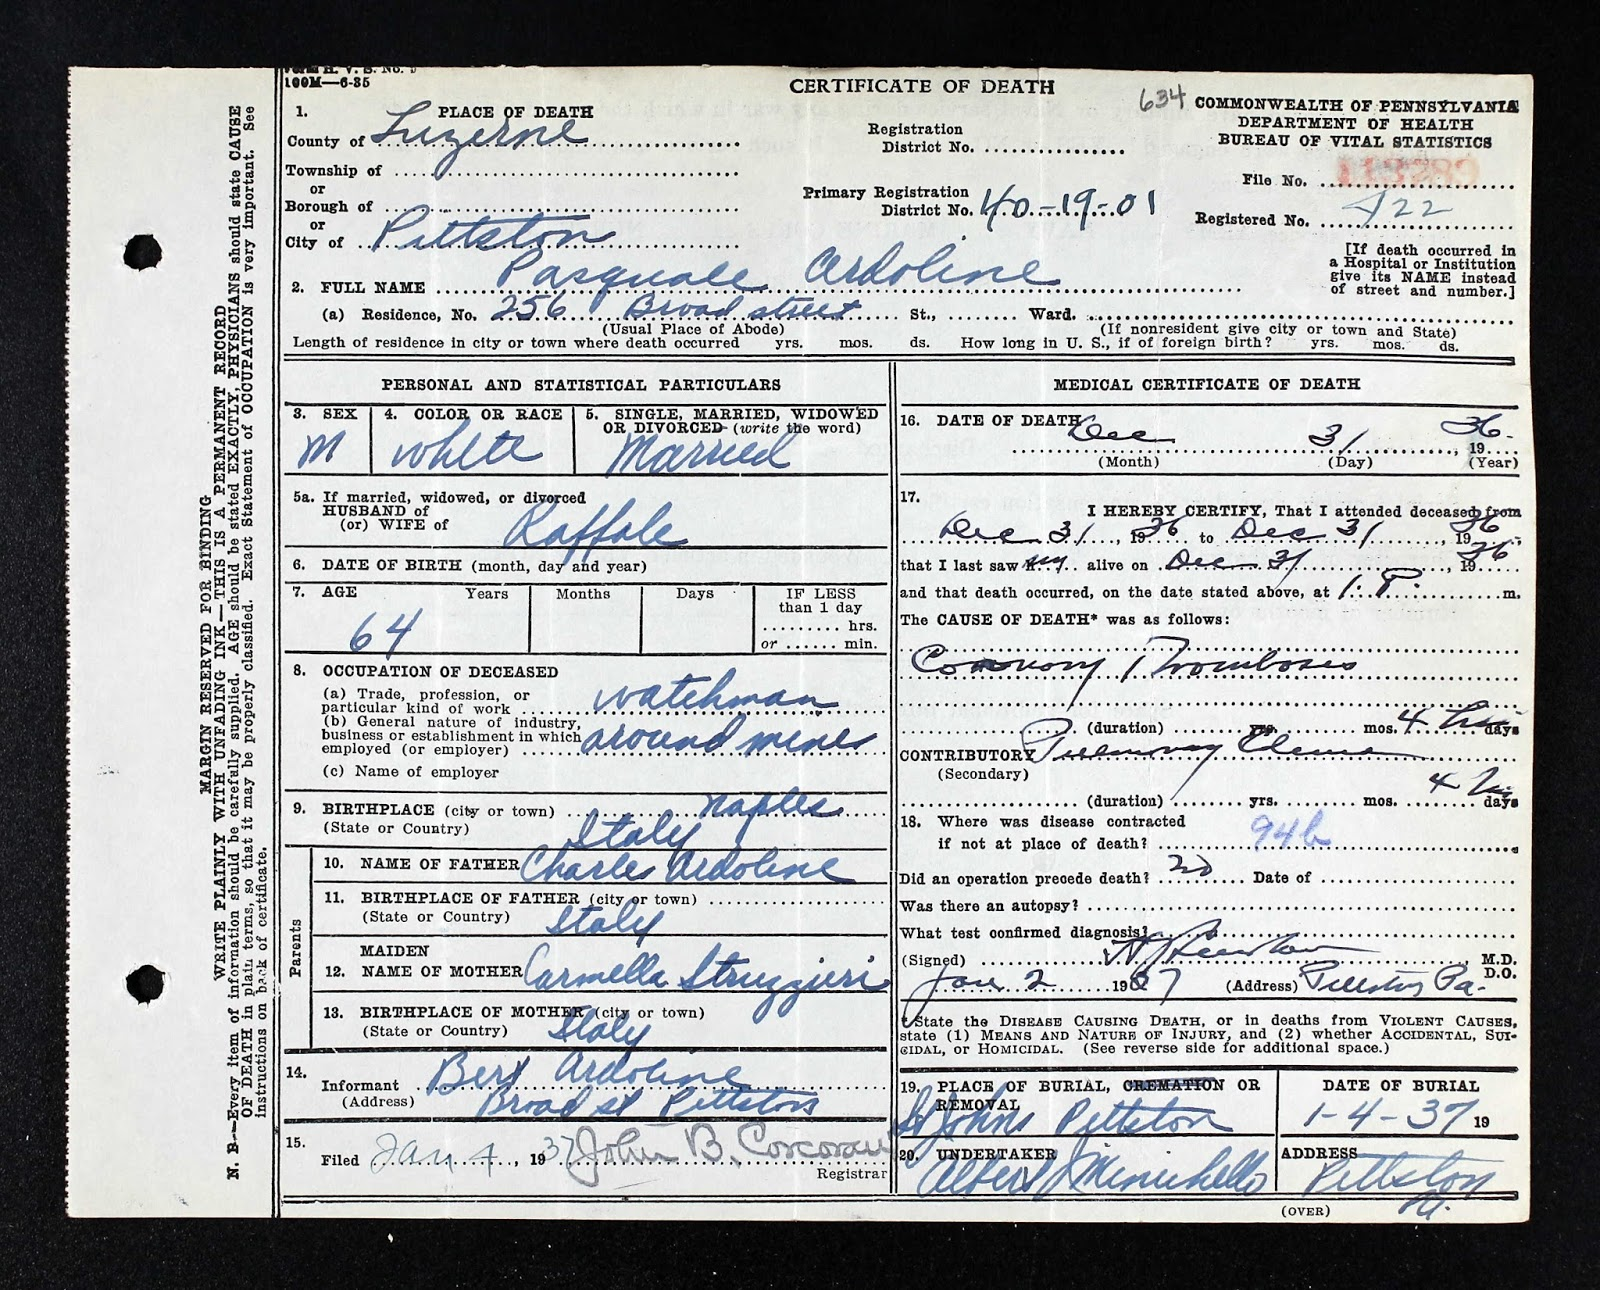 The genealogy of torre le nocelle italy 1936 pittston pa death 1936 pittston pa death of pasquale ardolino pennsylvania death certificate 1betcityfo Gallery